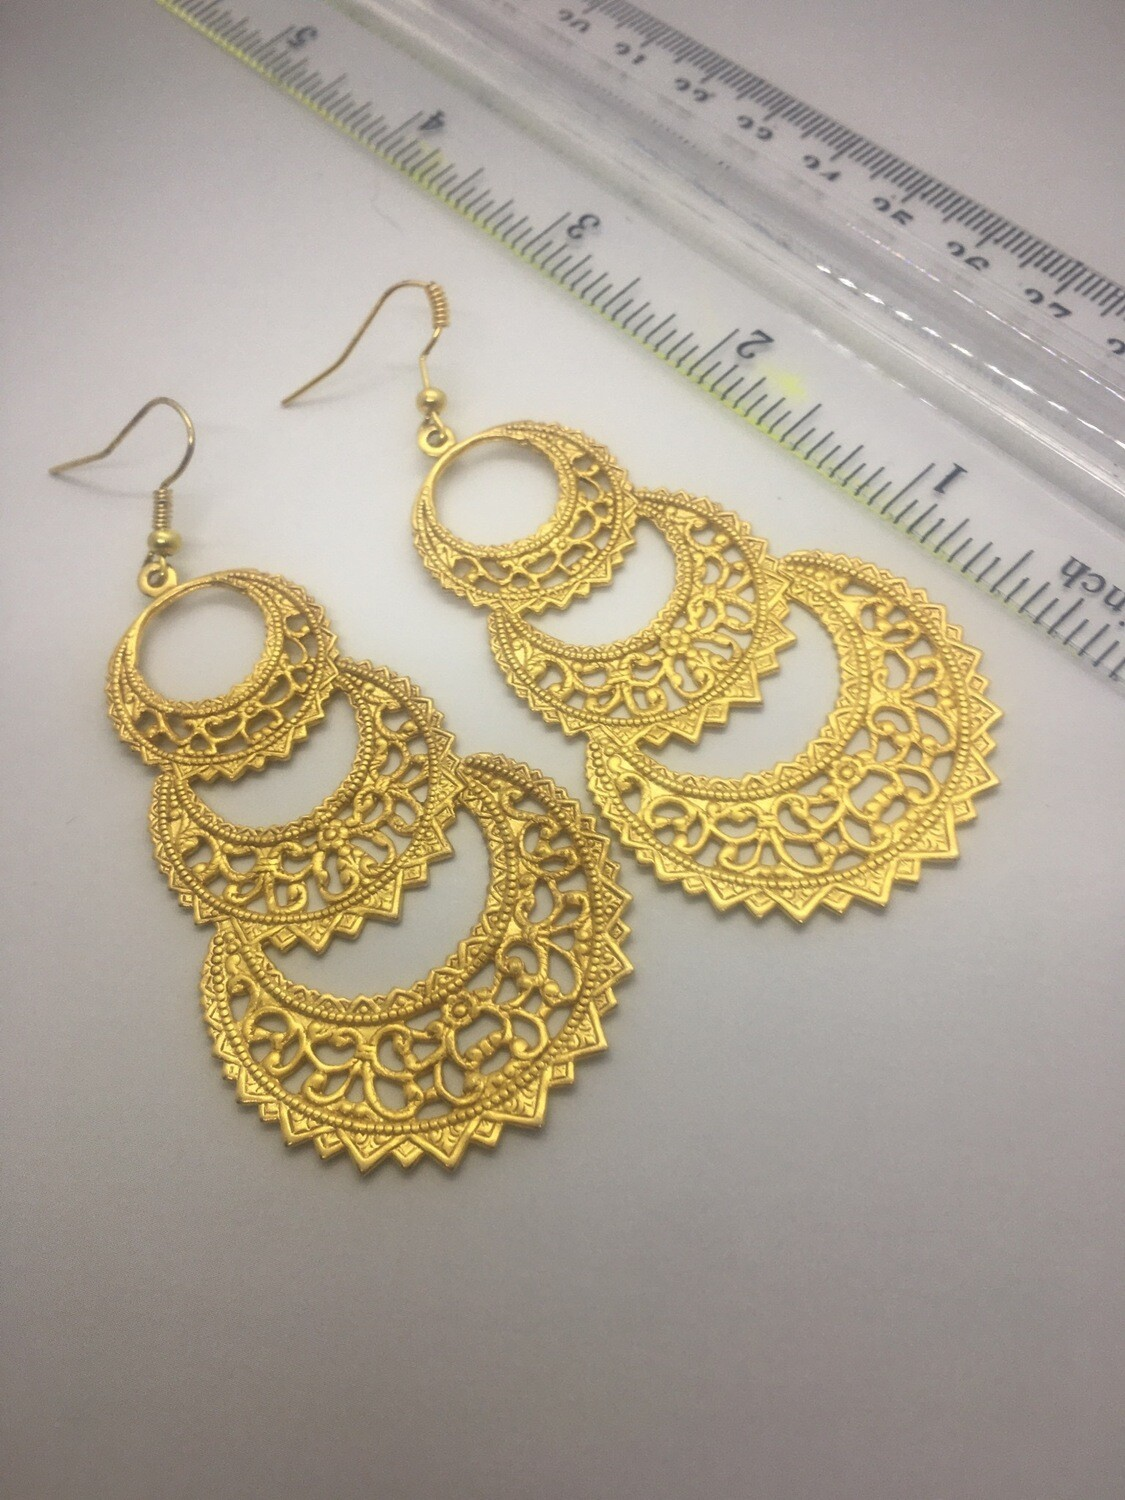 Brass Filigree Dangles